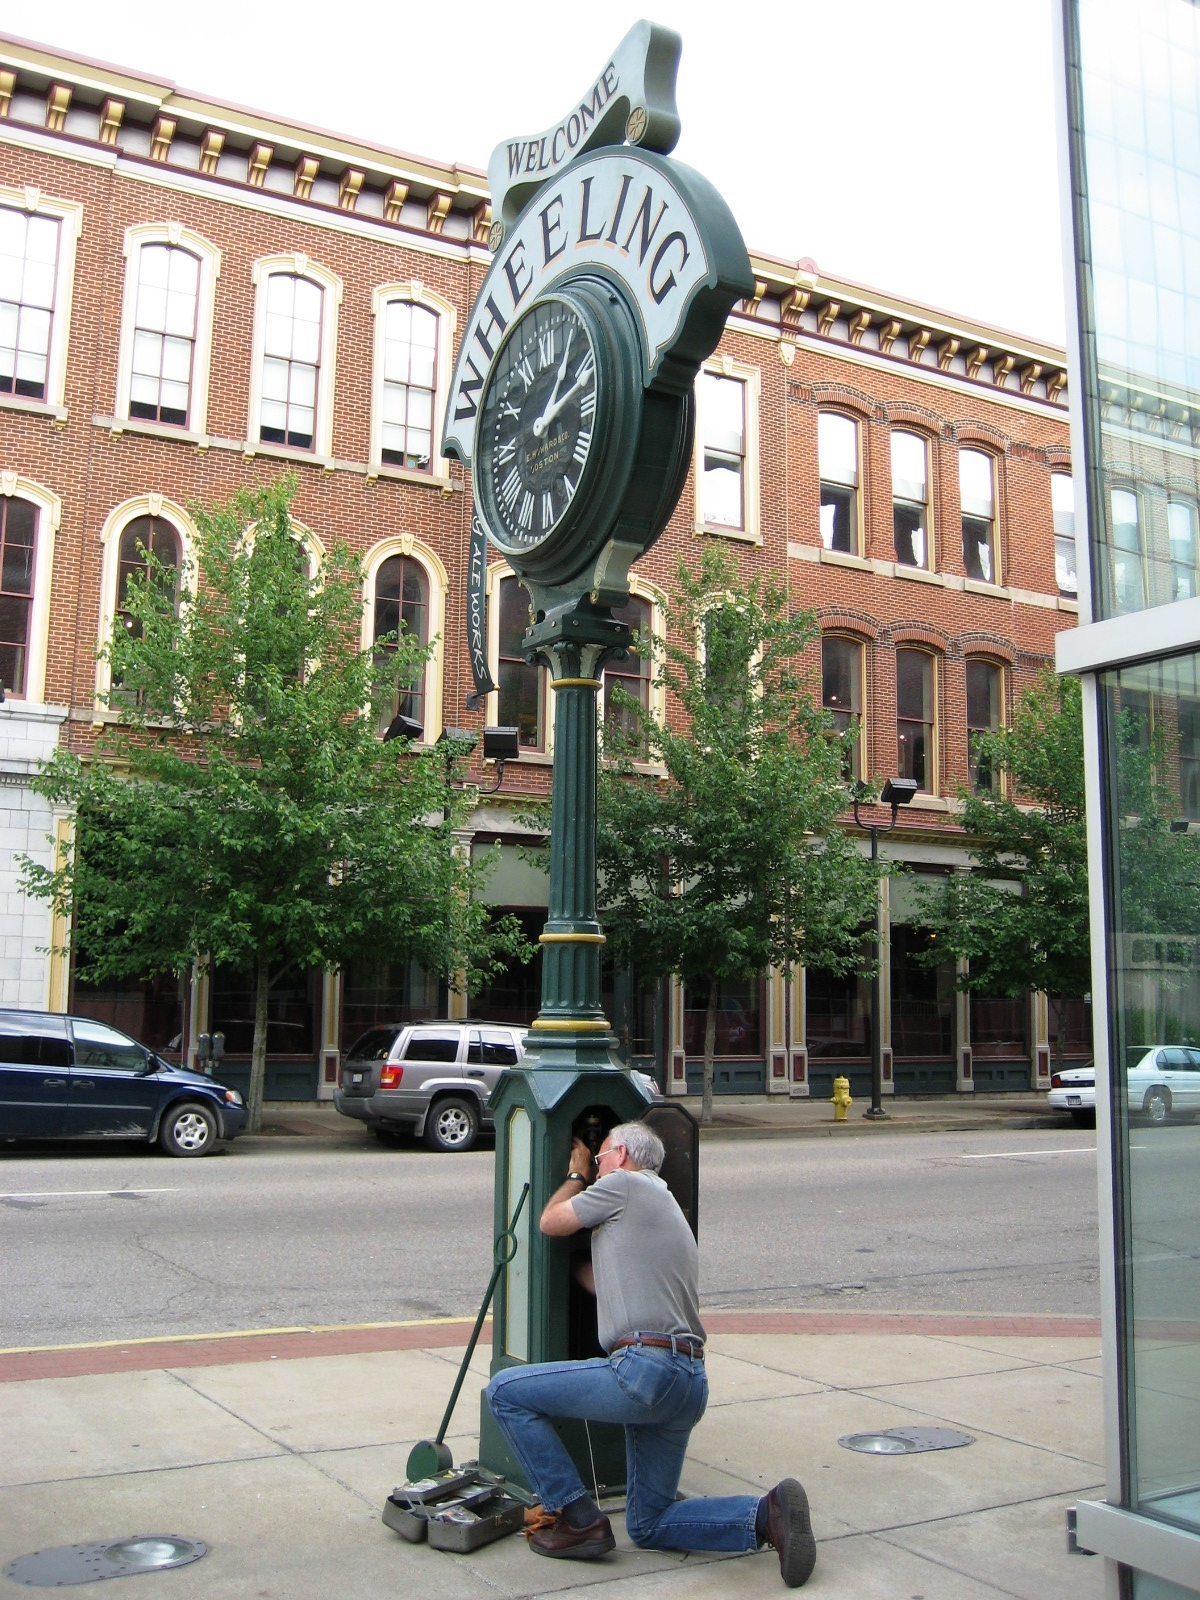 The Hancher Clock was a downtown Wheeling icon for many years; it now resides on Main Street at the Convention and Visitor's Bureau. (Photo credit: Jeremy S. Morris)